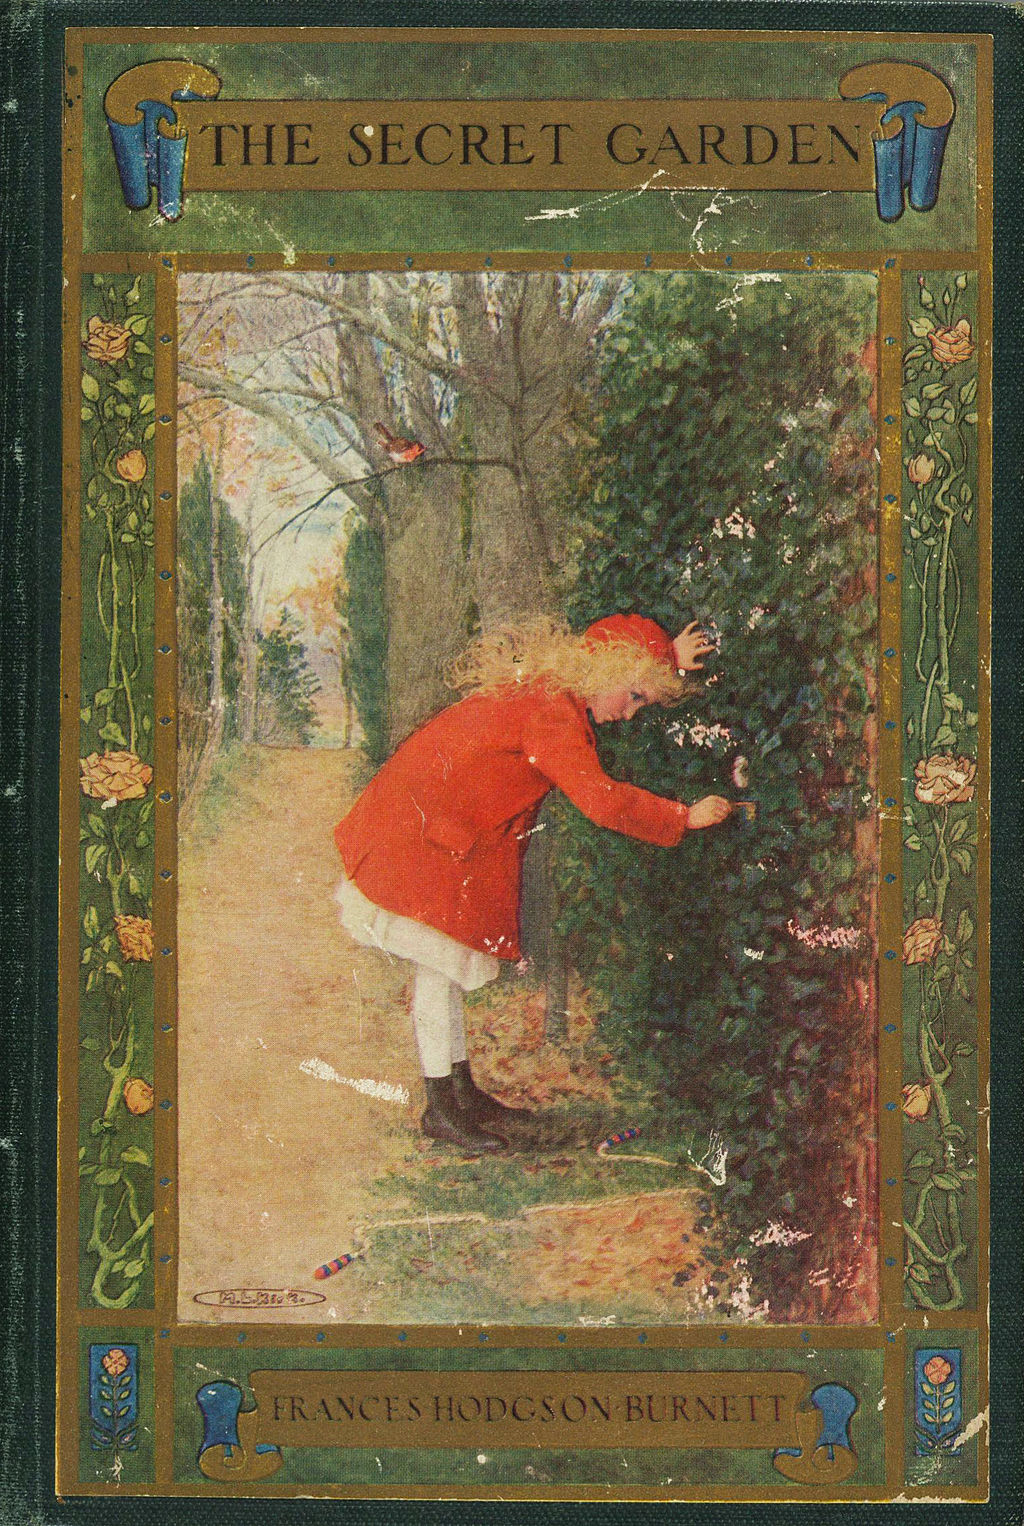 Houghton_AC85_B9345_911s_-_Secret_Garden,_1911_-_cover.jpg